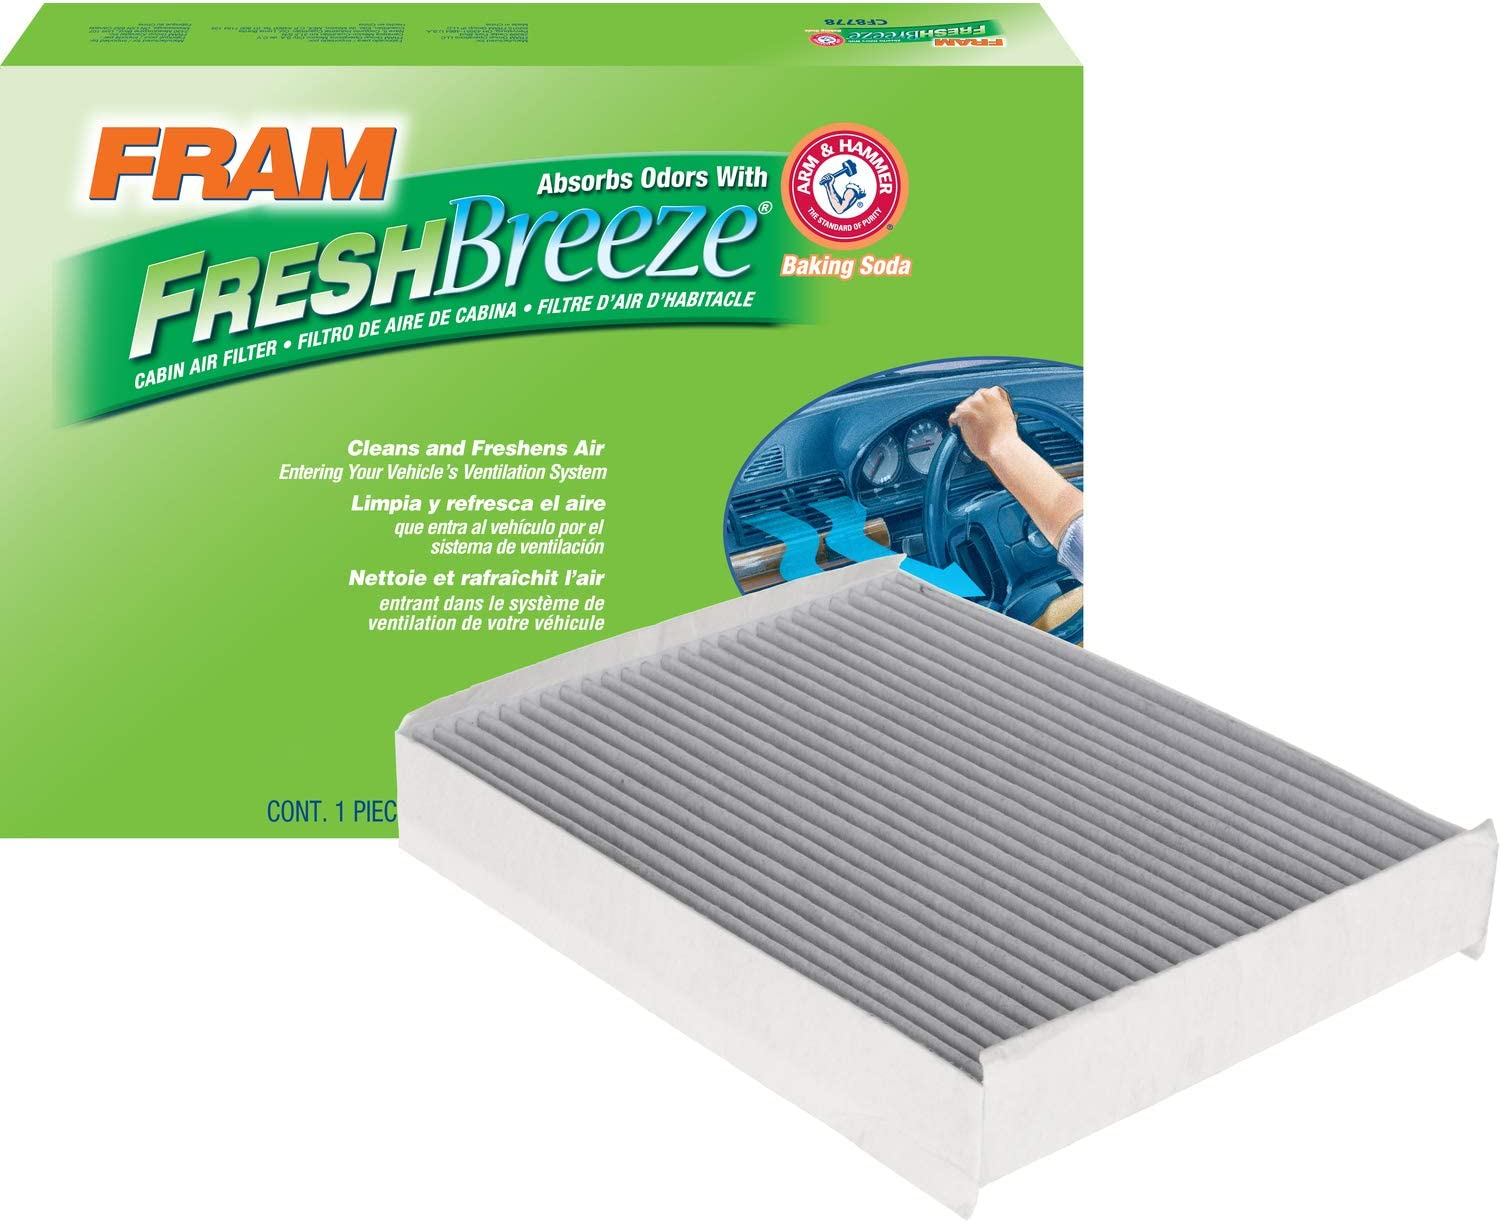 FRAM CF12150 Fresh Breeze Cabin Air Filter with Arm and Hammer